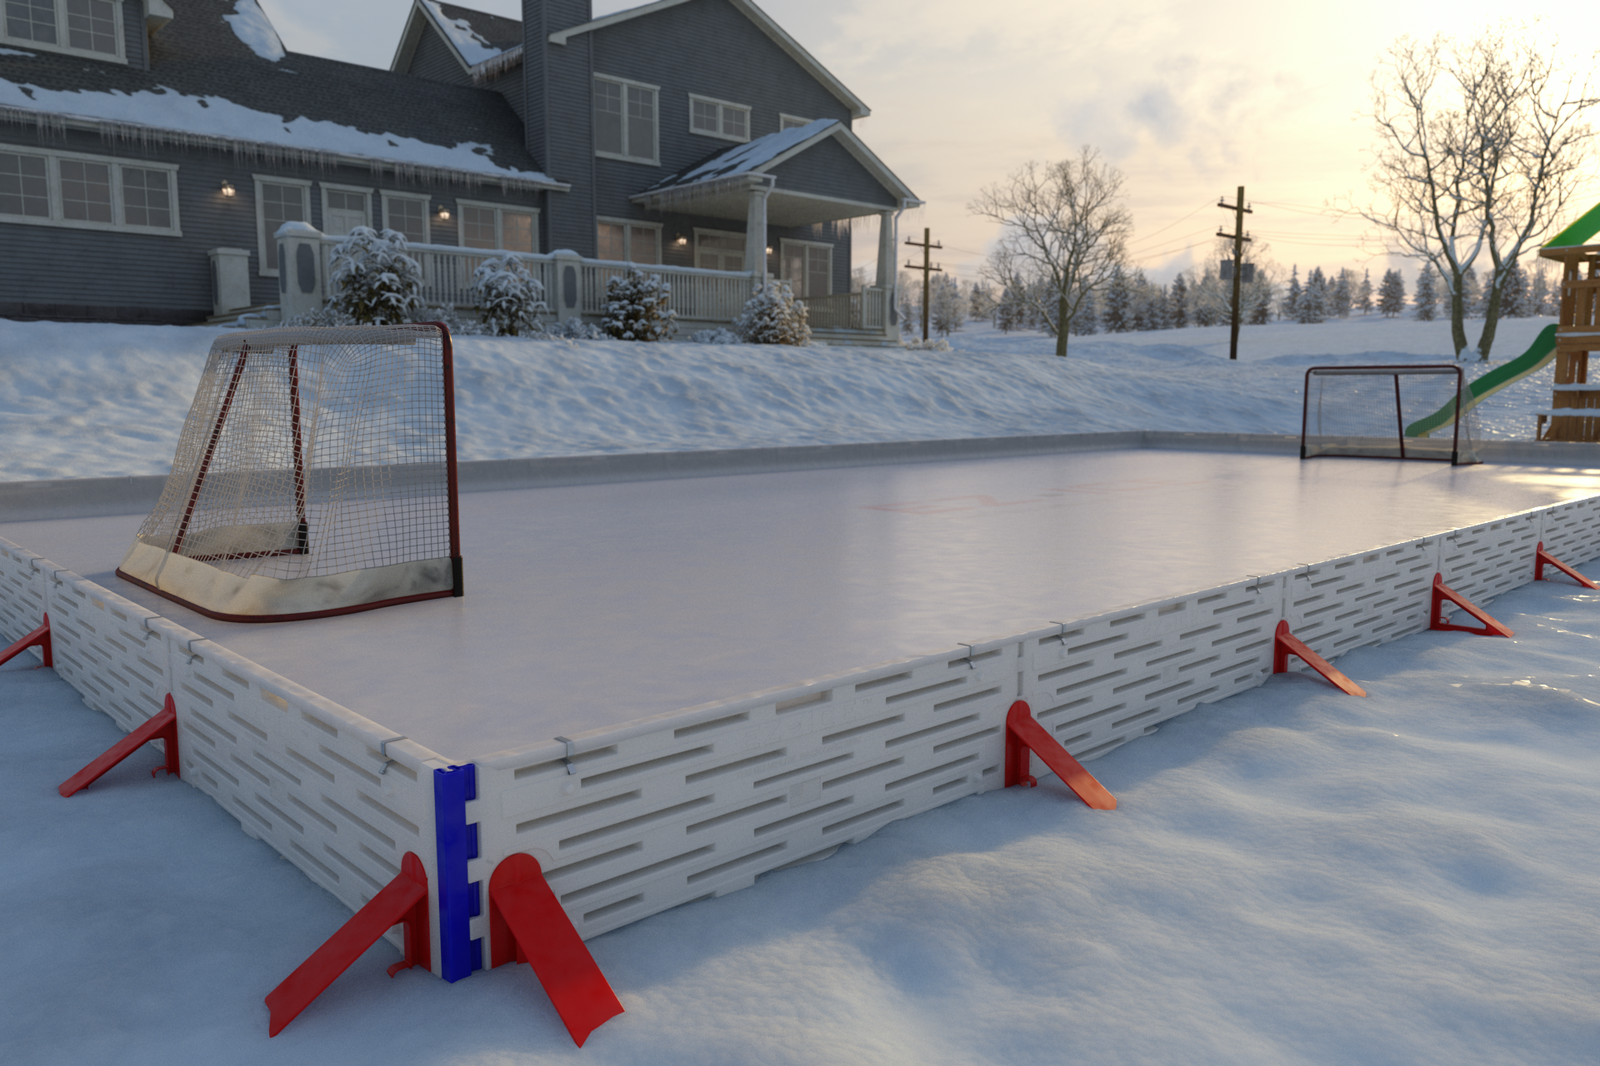 This Crazy Video Shows How You Can Build An Ice Rink In ...